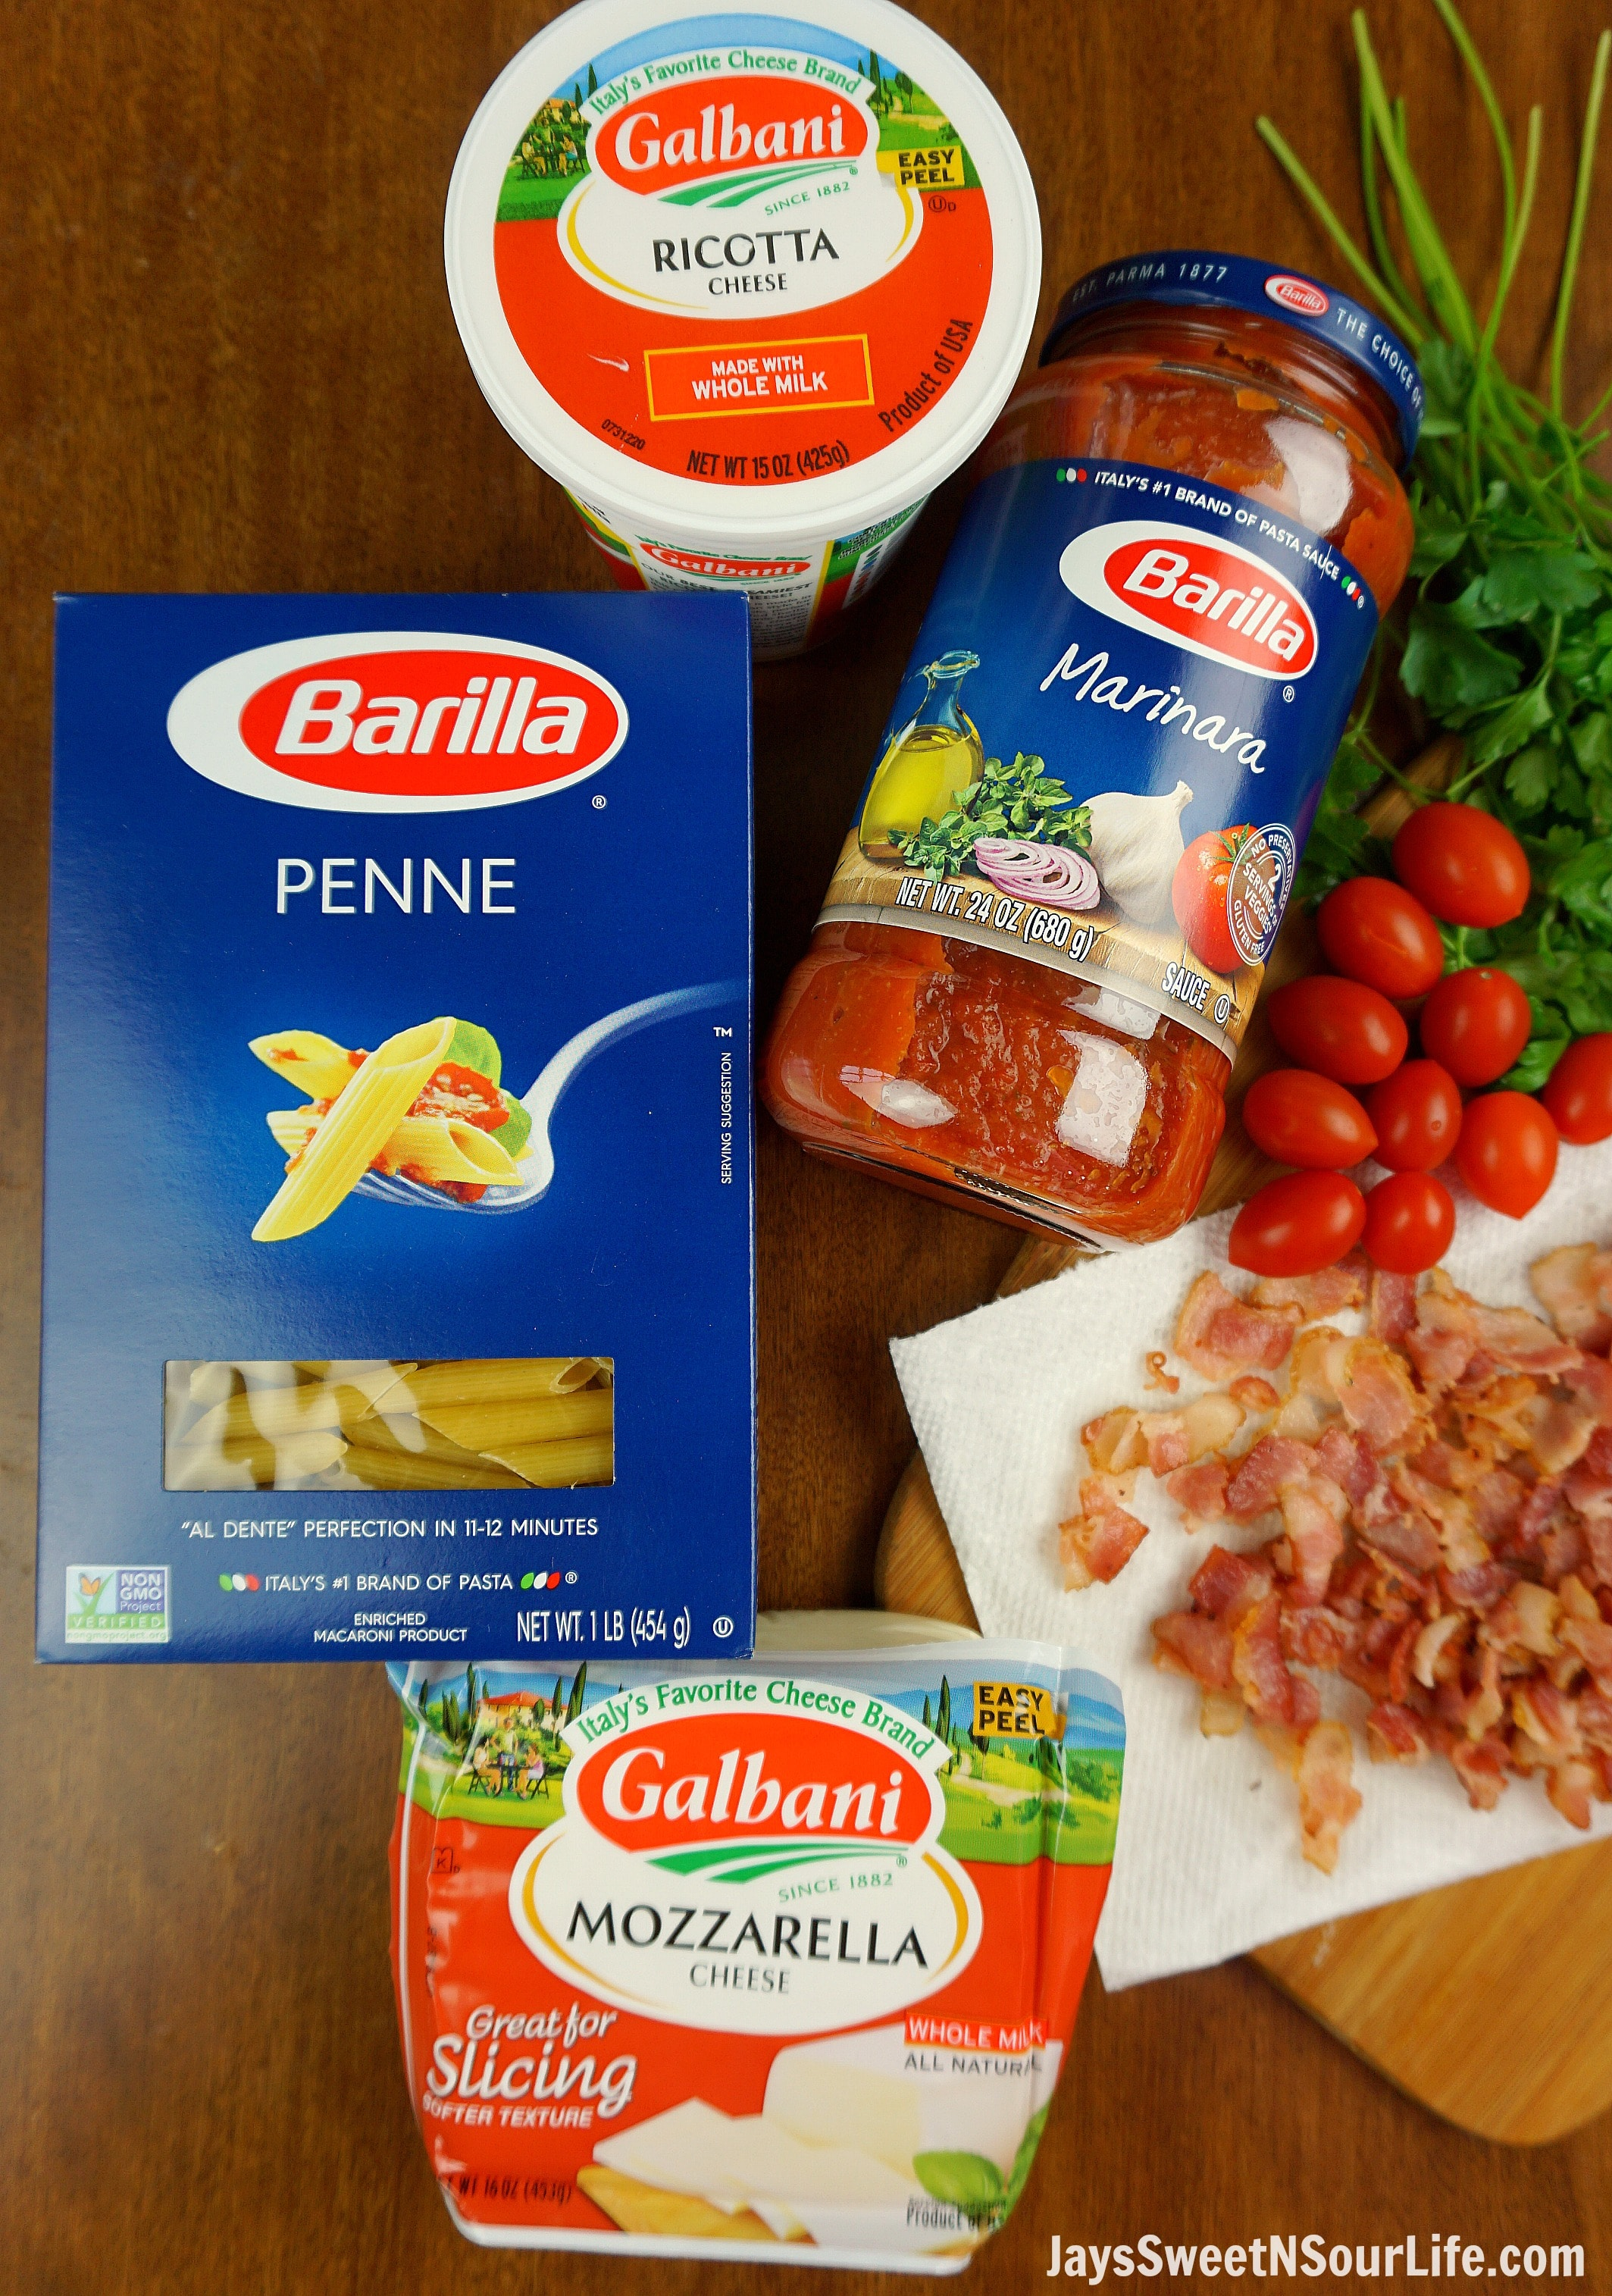 Cheesy Bacon and Spinach Penne Pasta Ingredients. Treat your family this holiday season with a deliciously easy to make Cheesy Bacon and Spinach Penne Pasta. Perfect for any dinner time during the year. Shared via Jays Sweet N Sour Life.